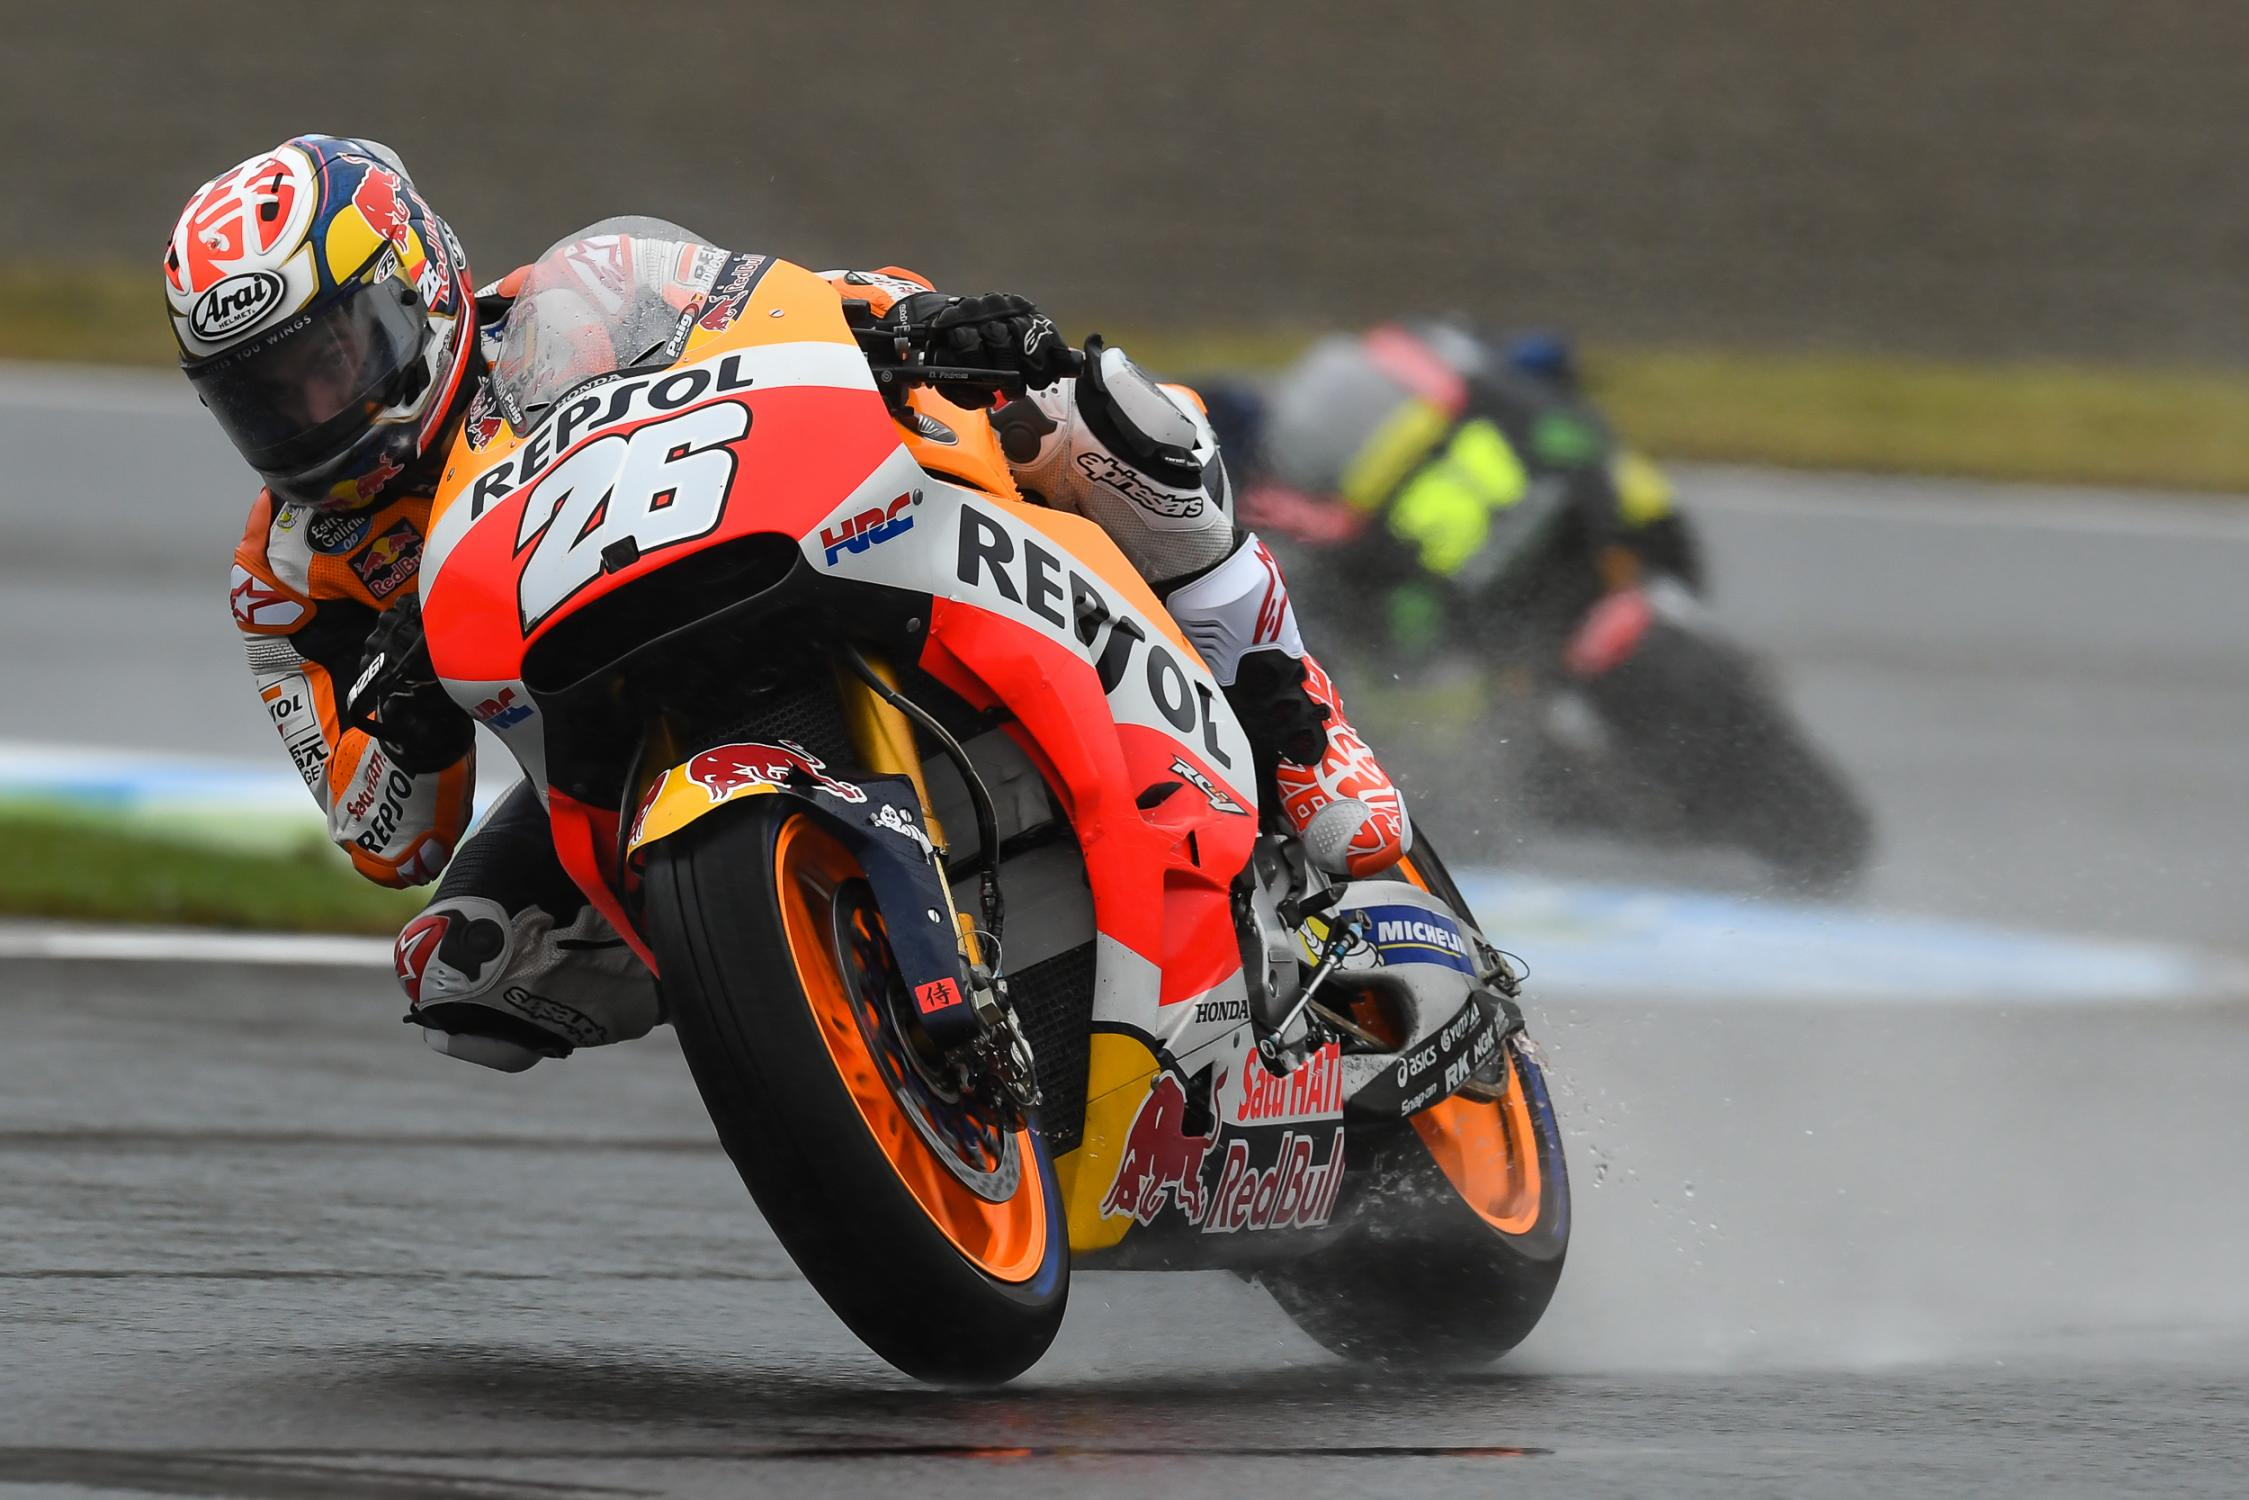 26-dani-pedrosa-espdsc_1777.gallery_full_top_fullscreen.jpg